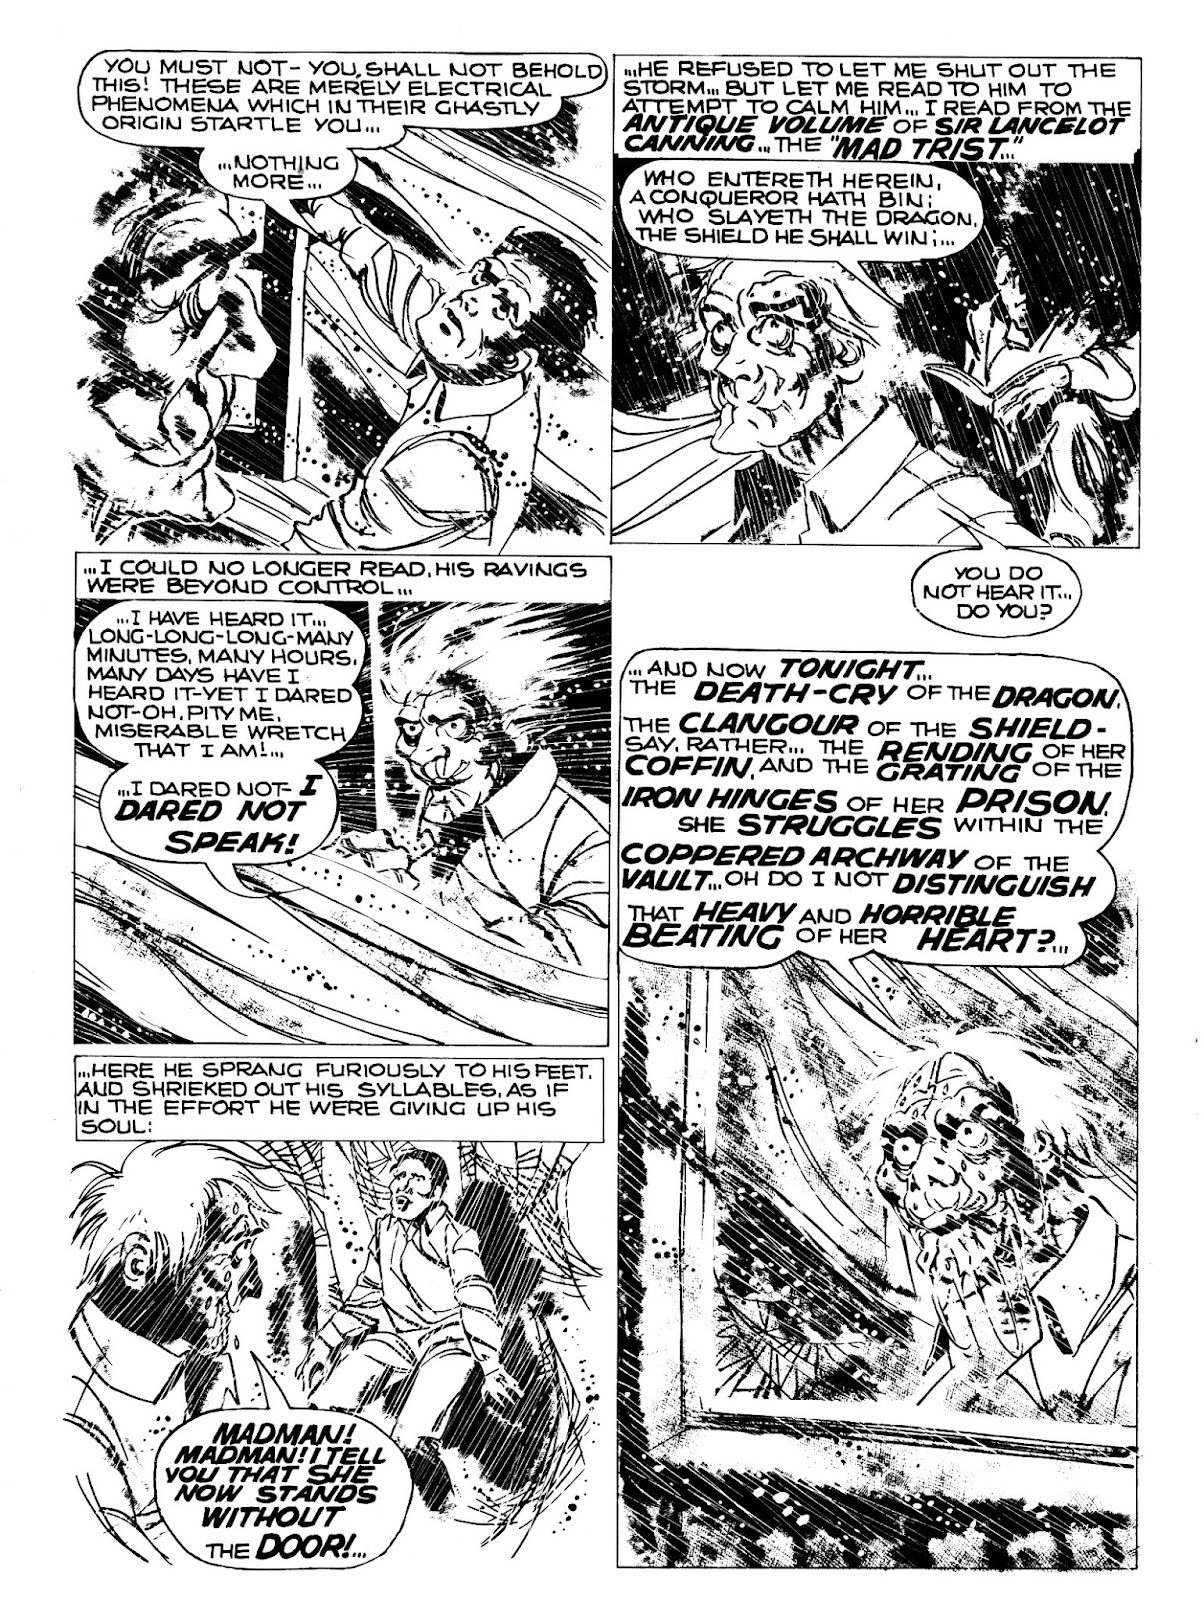 Scream (1973) issue 3 - Page 42